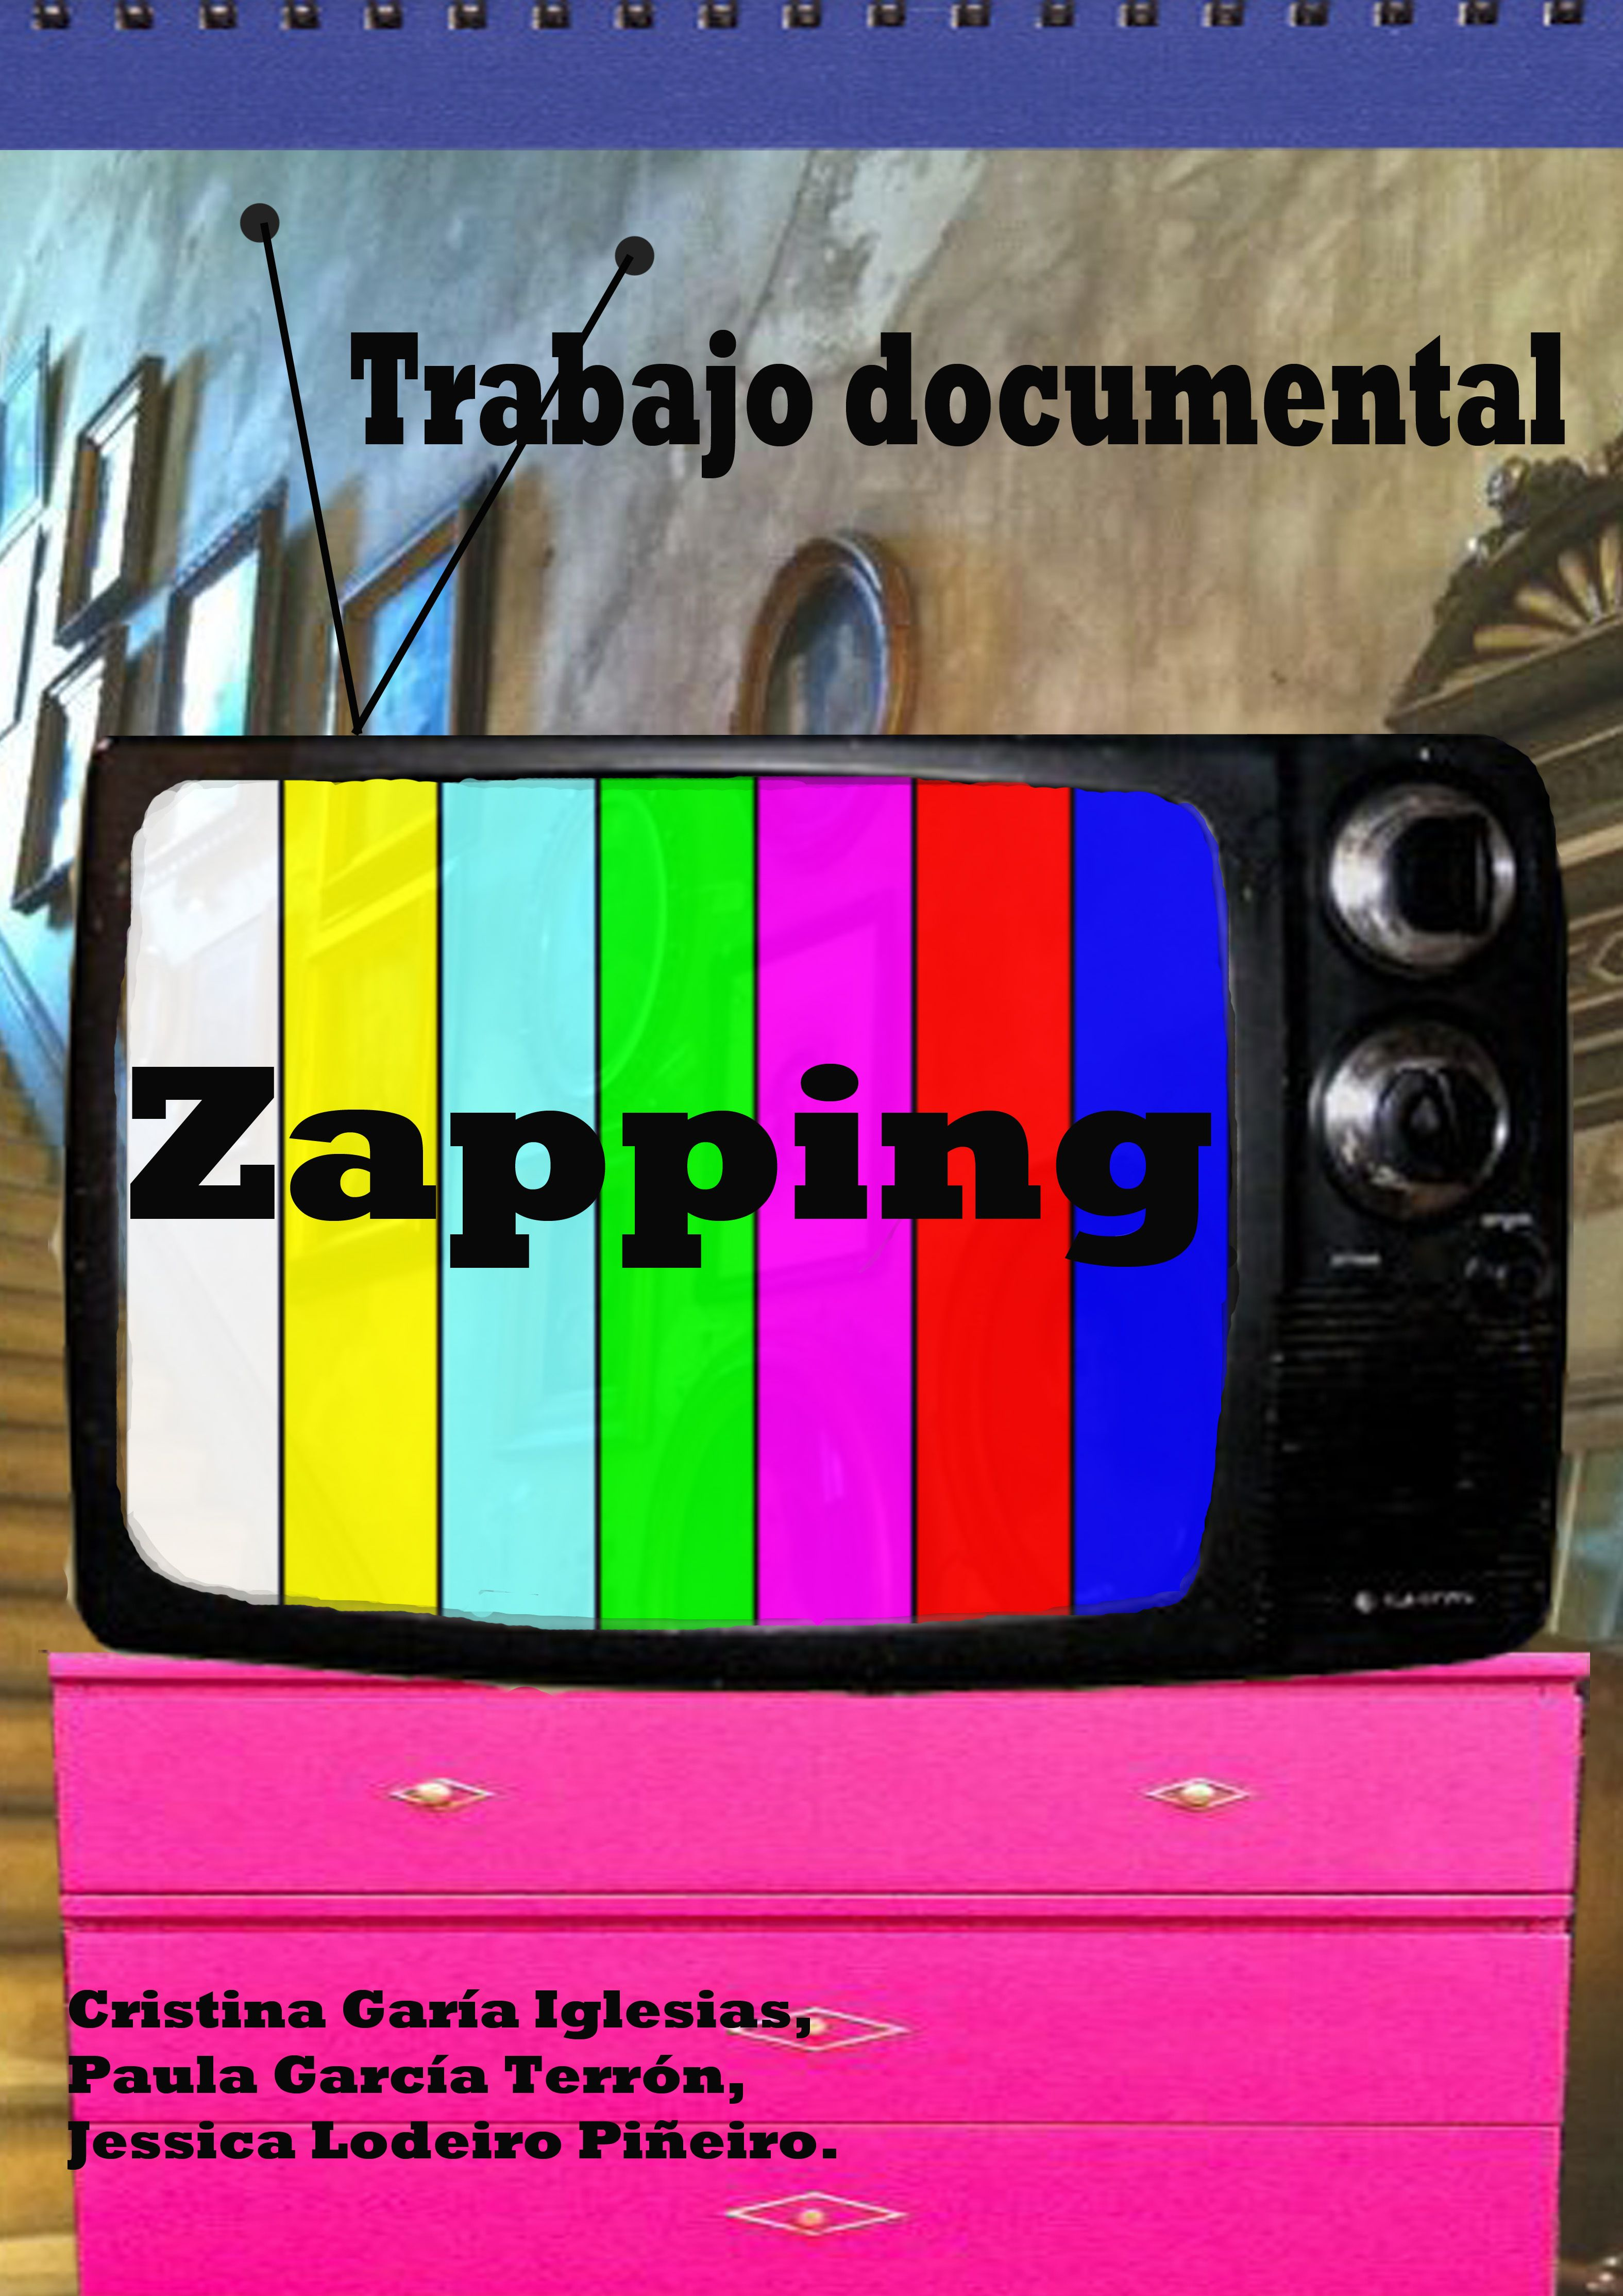 zapping agency